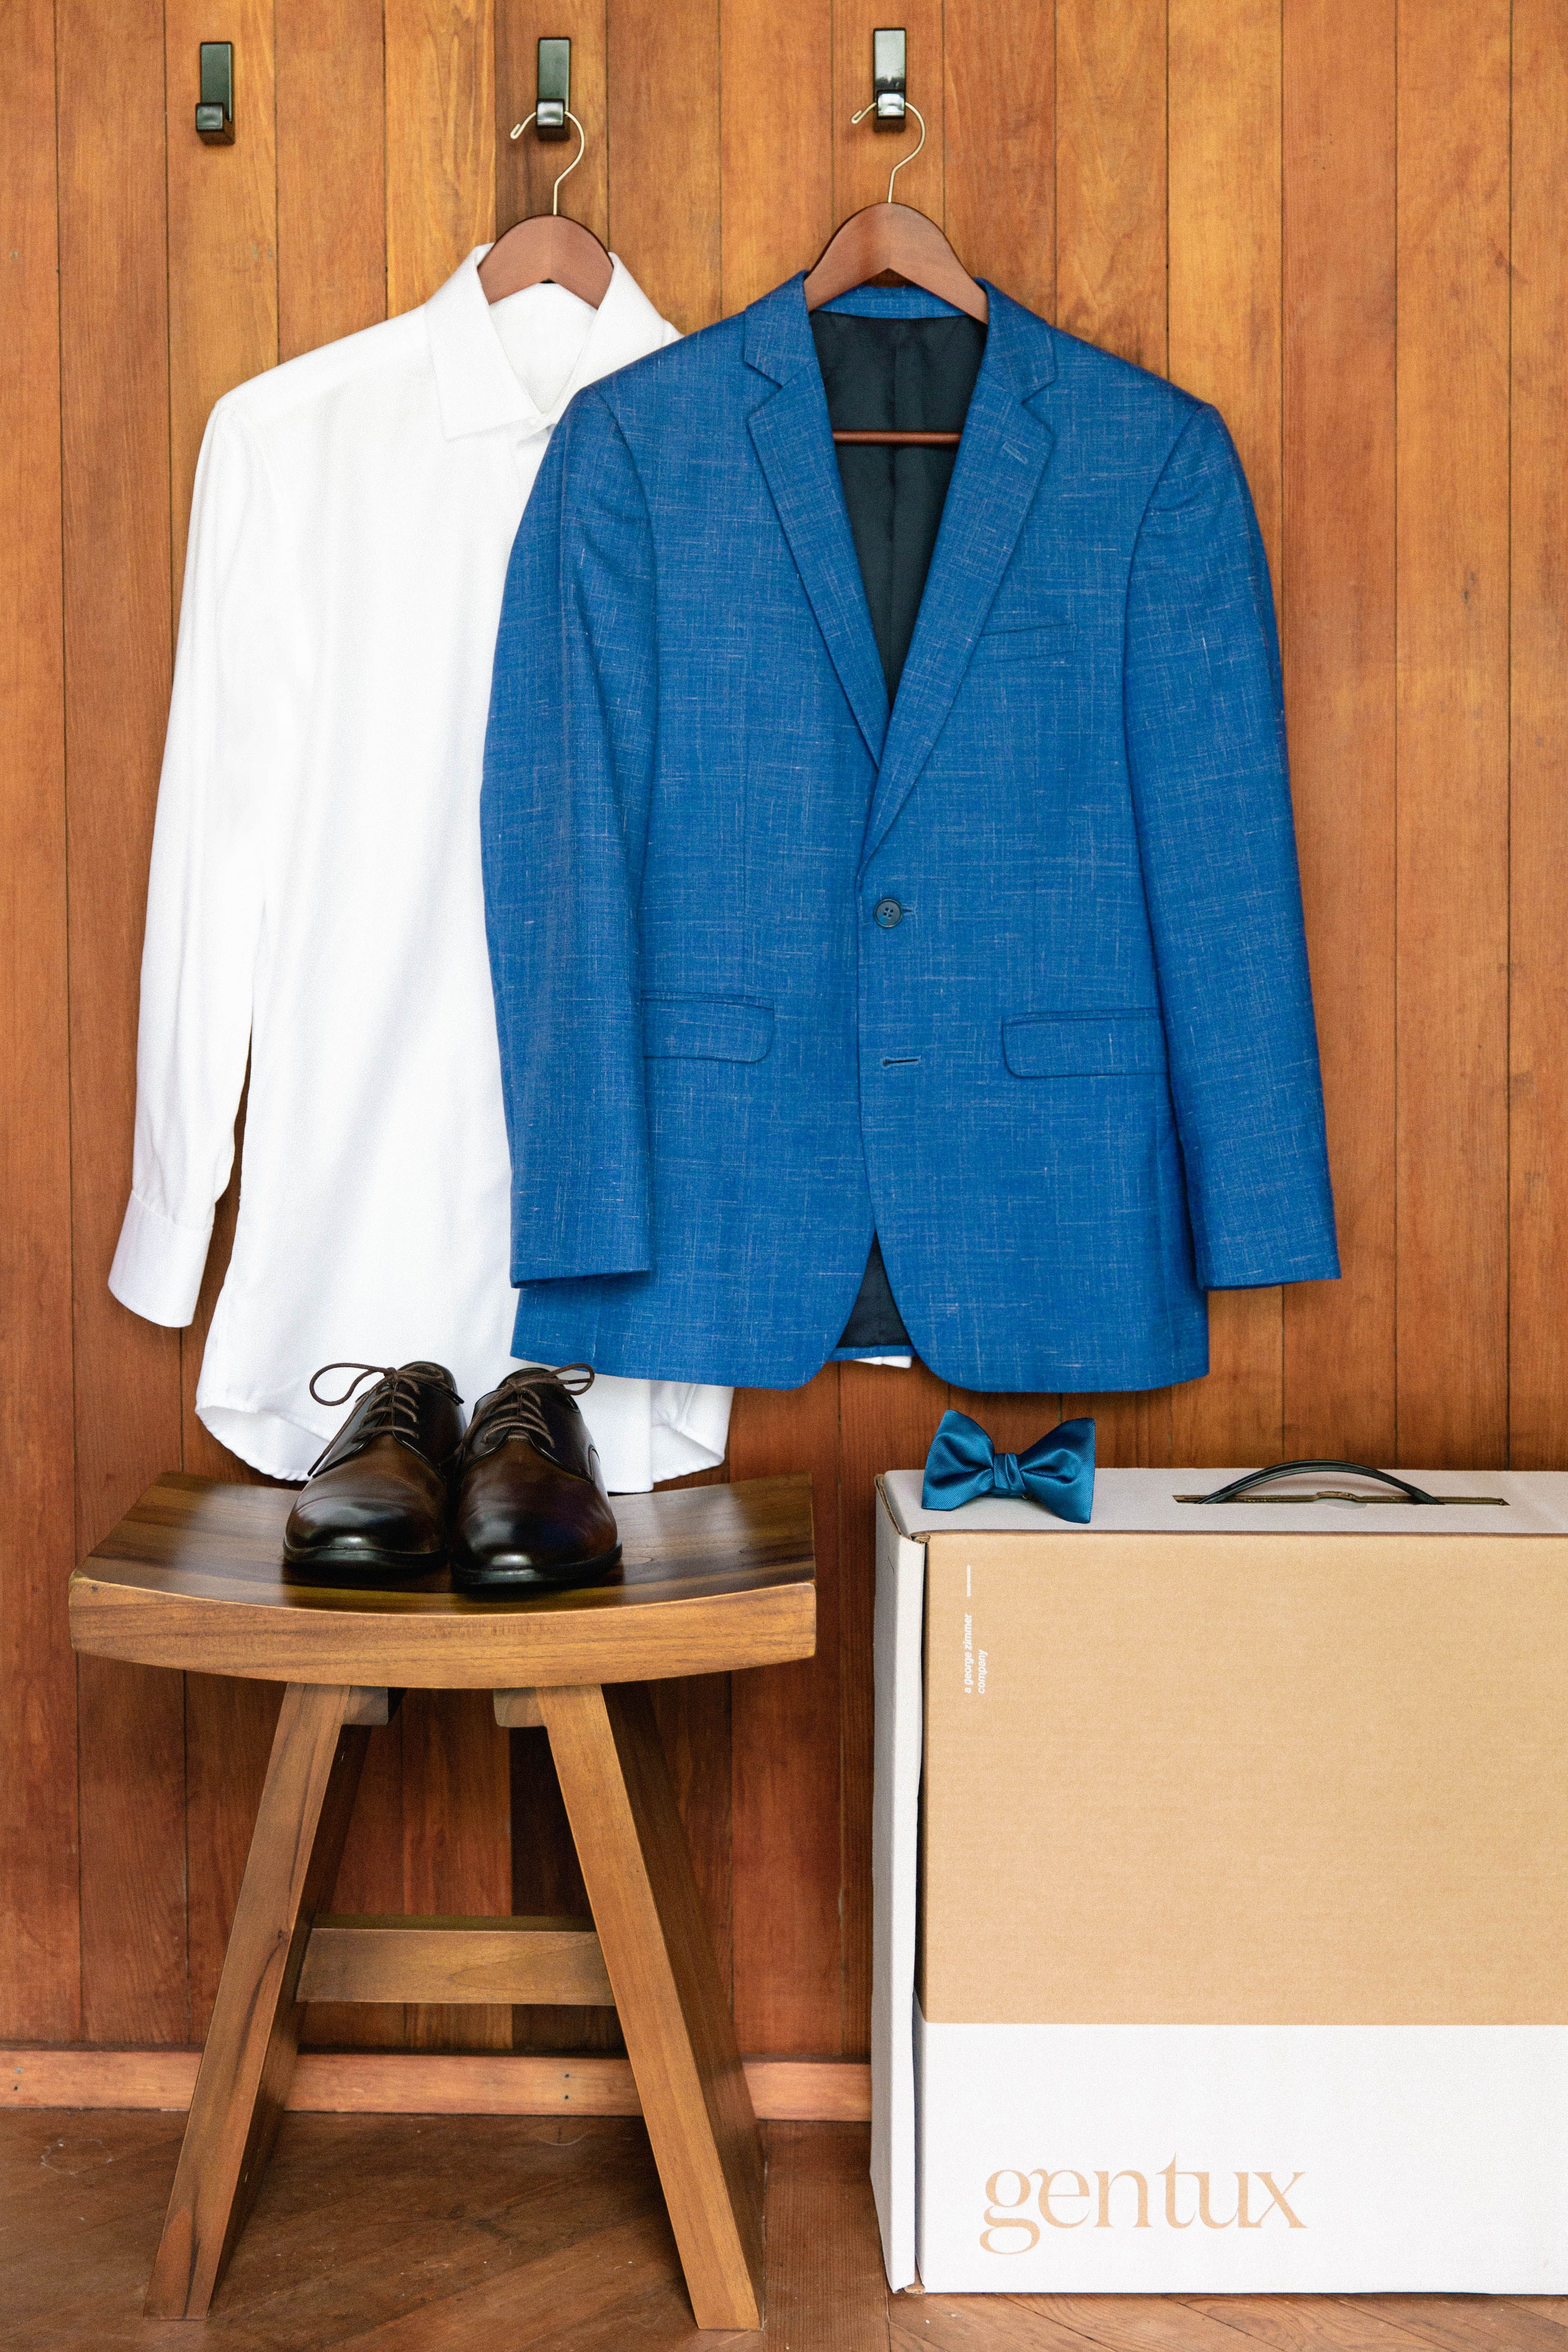 Indigo Blue Notch Lapel Suit | Something Blue (and borrowed ...